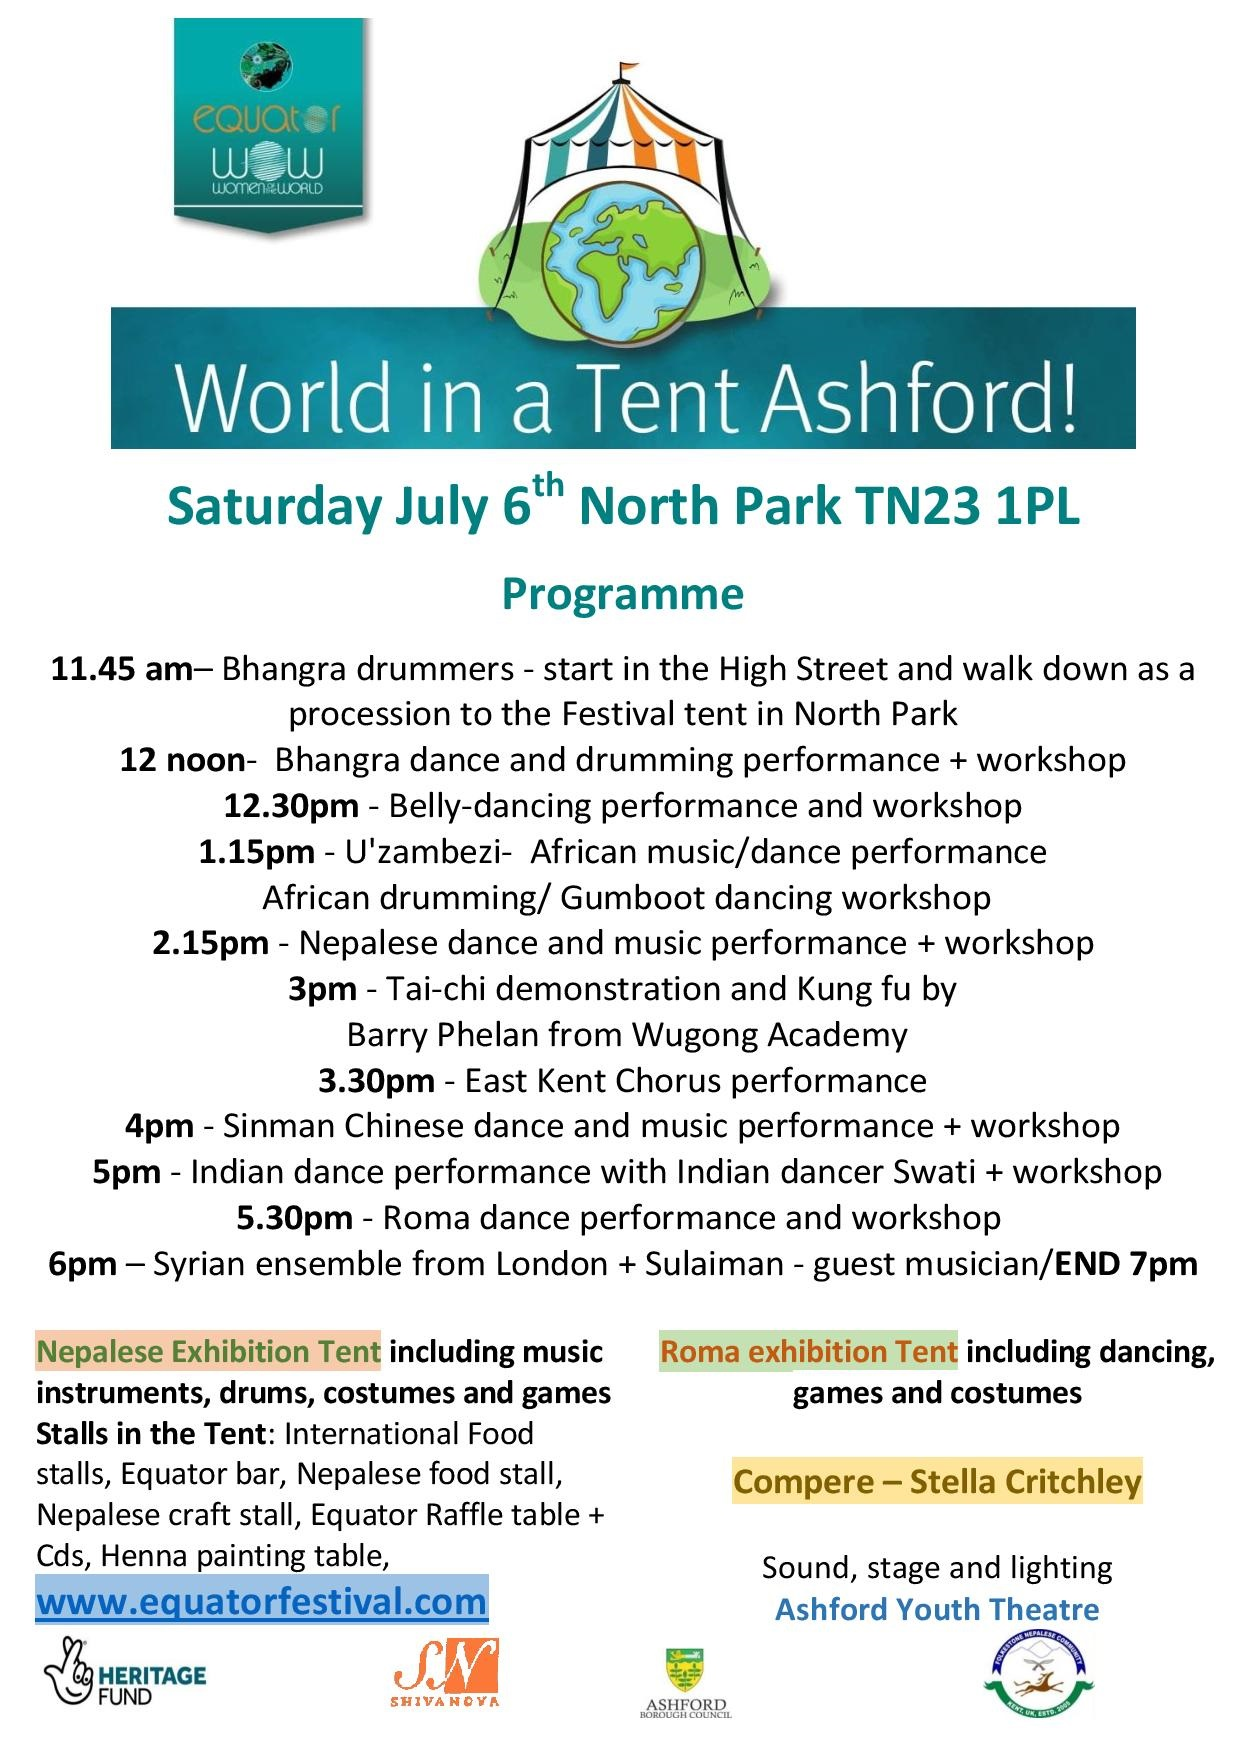 Programme -World in a Tent July 6th Ashford